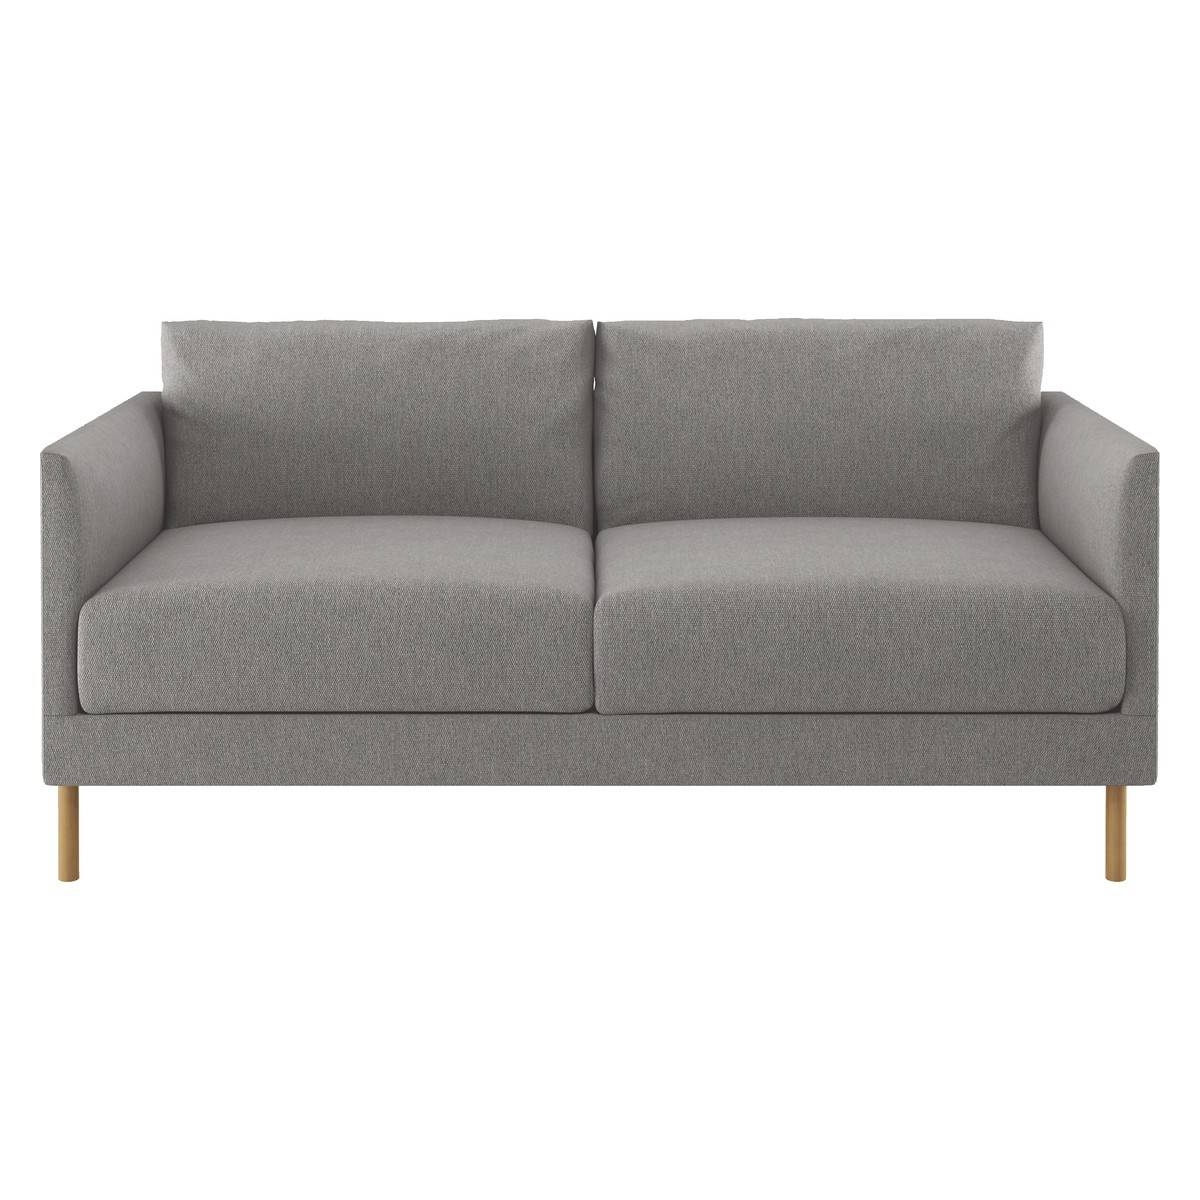 Hyde Grey Fabric 2 Seater Sofa, Wooden Legs | Buy Now At Habitat Uk throughout Two Seater Sofas (Image 15 of 30)